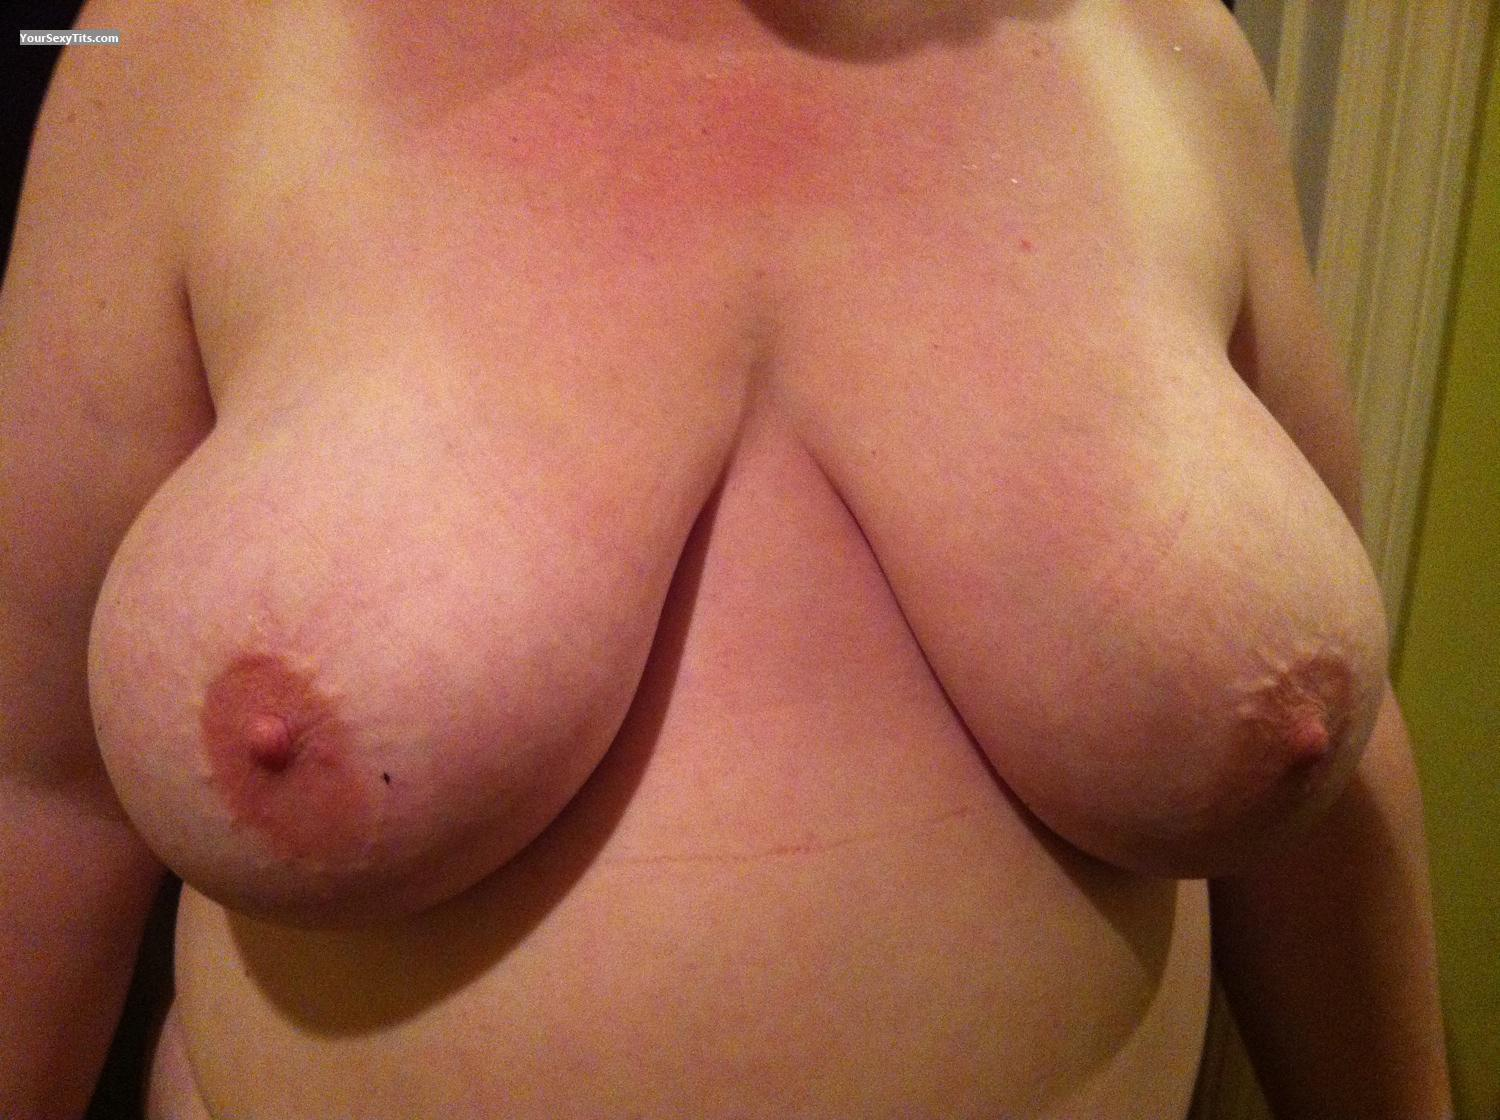 Tit Flash: Big Tits By IPhone - Roz from United States